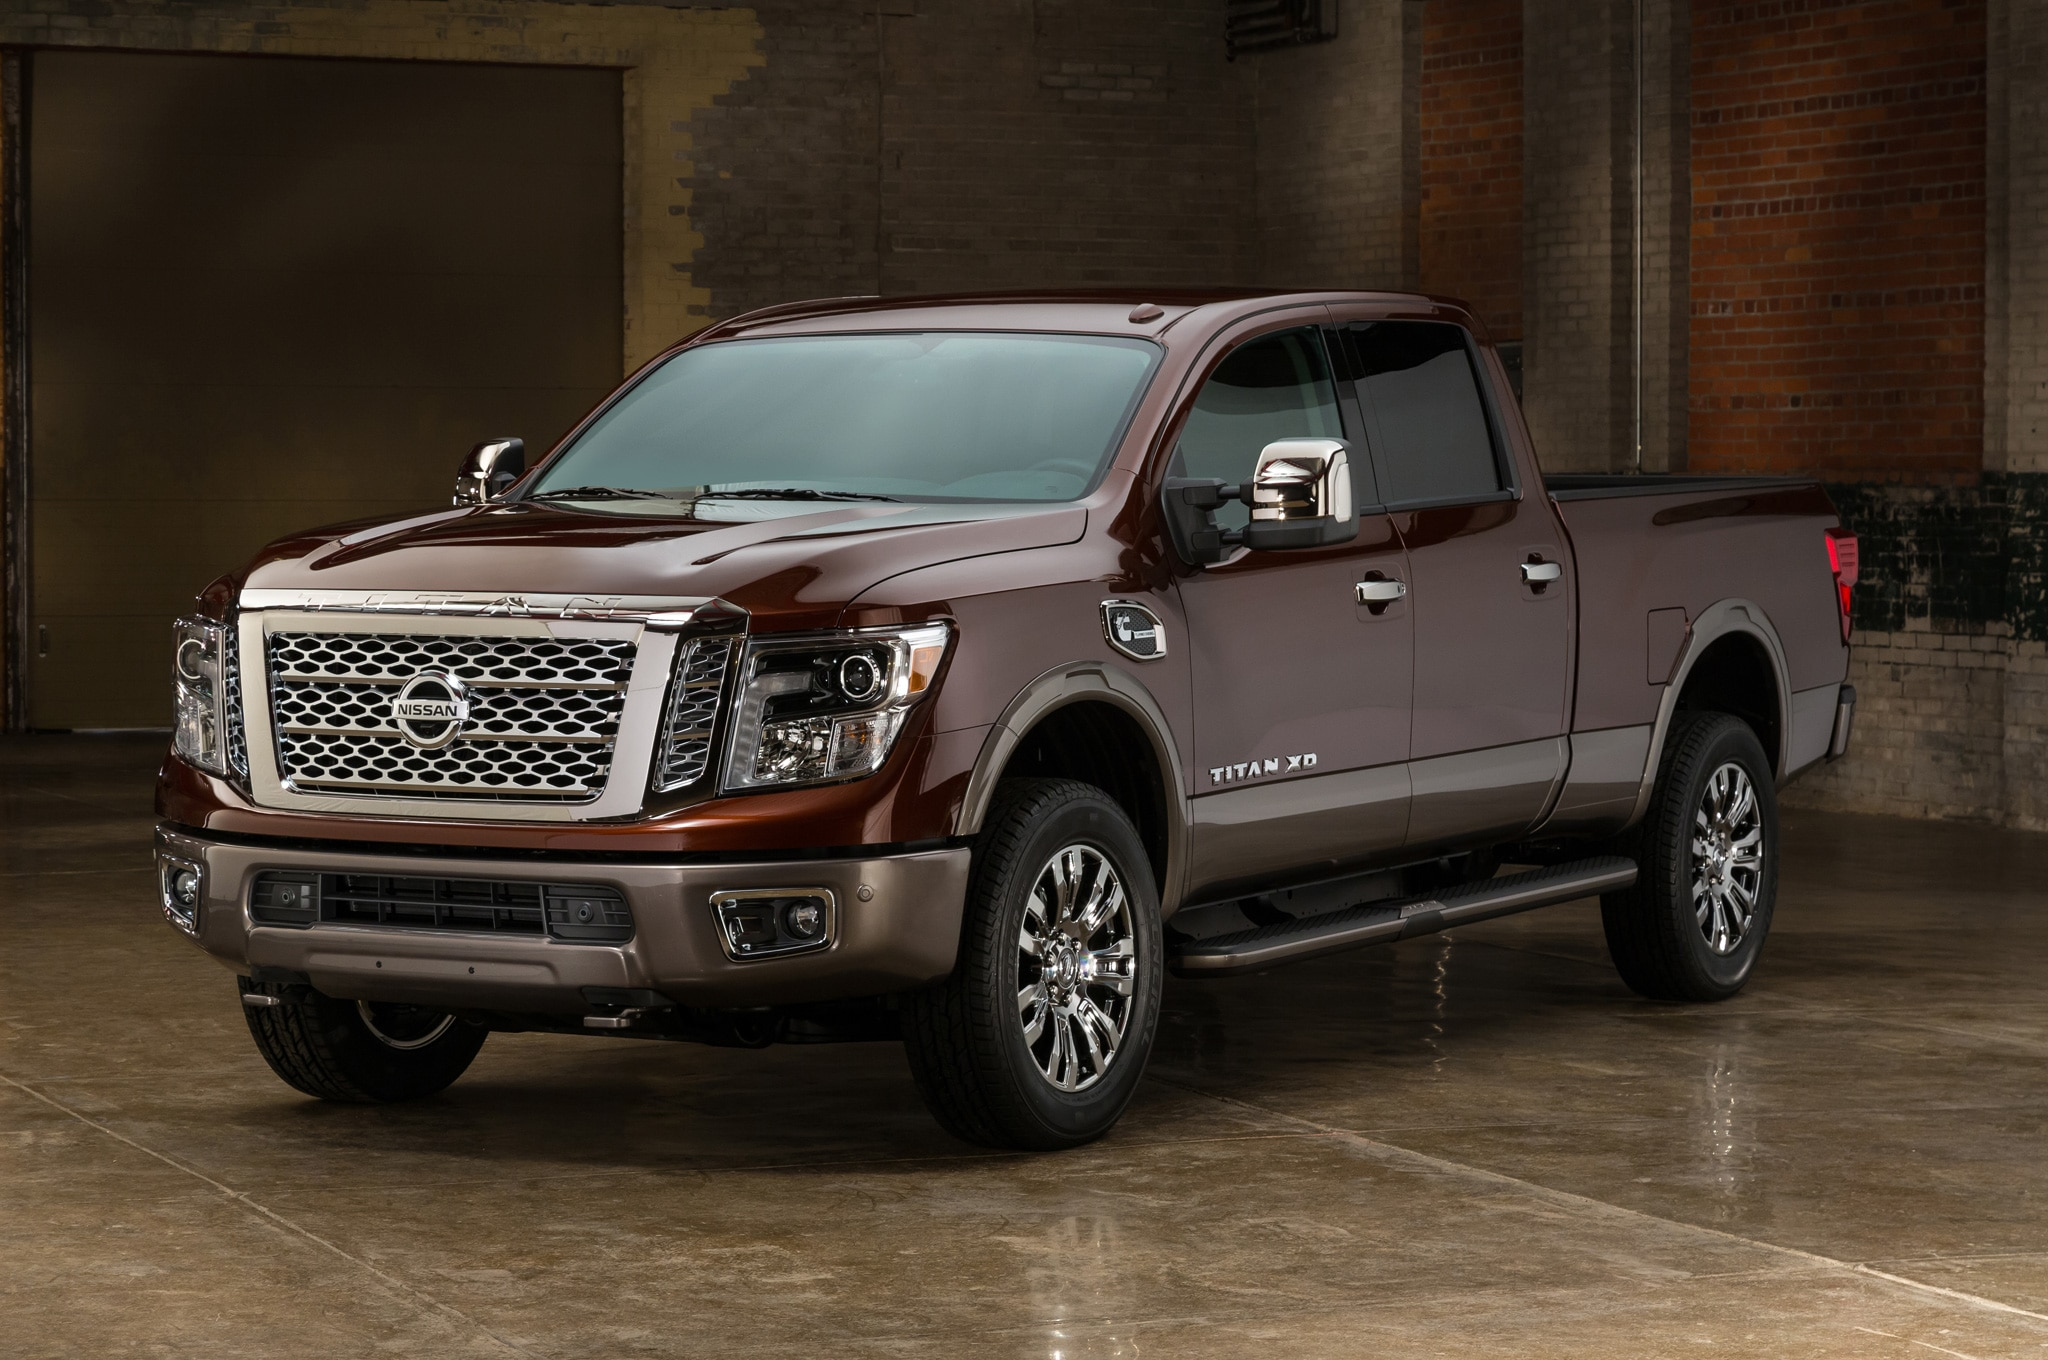 2016 nissan titan xd diesel starts at 41 485. Black Bedroom Furniture Sets. Home Design Ideas